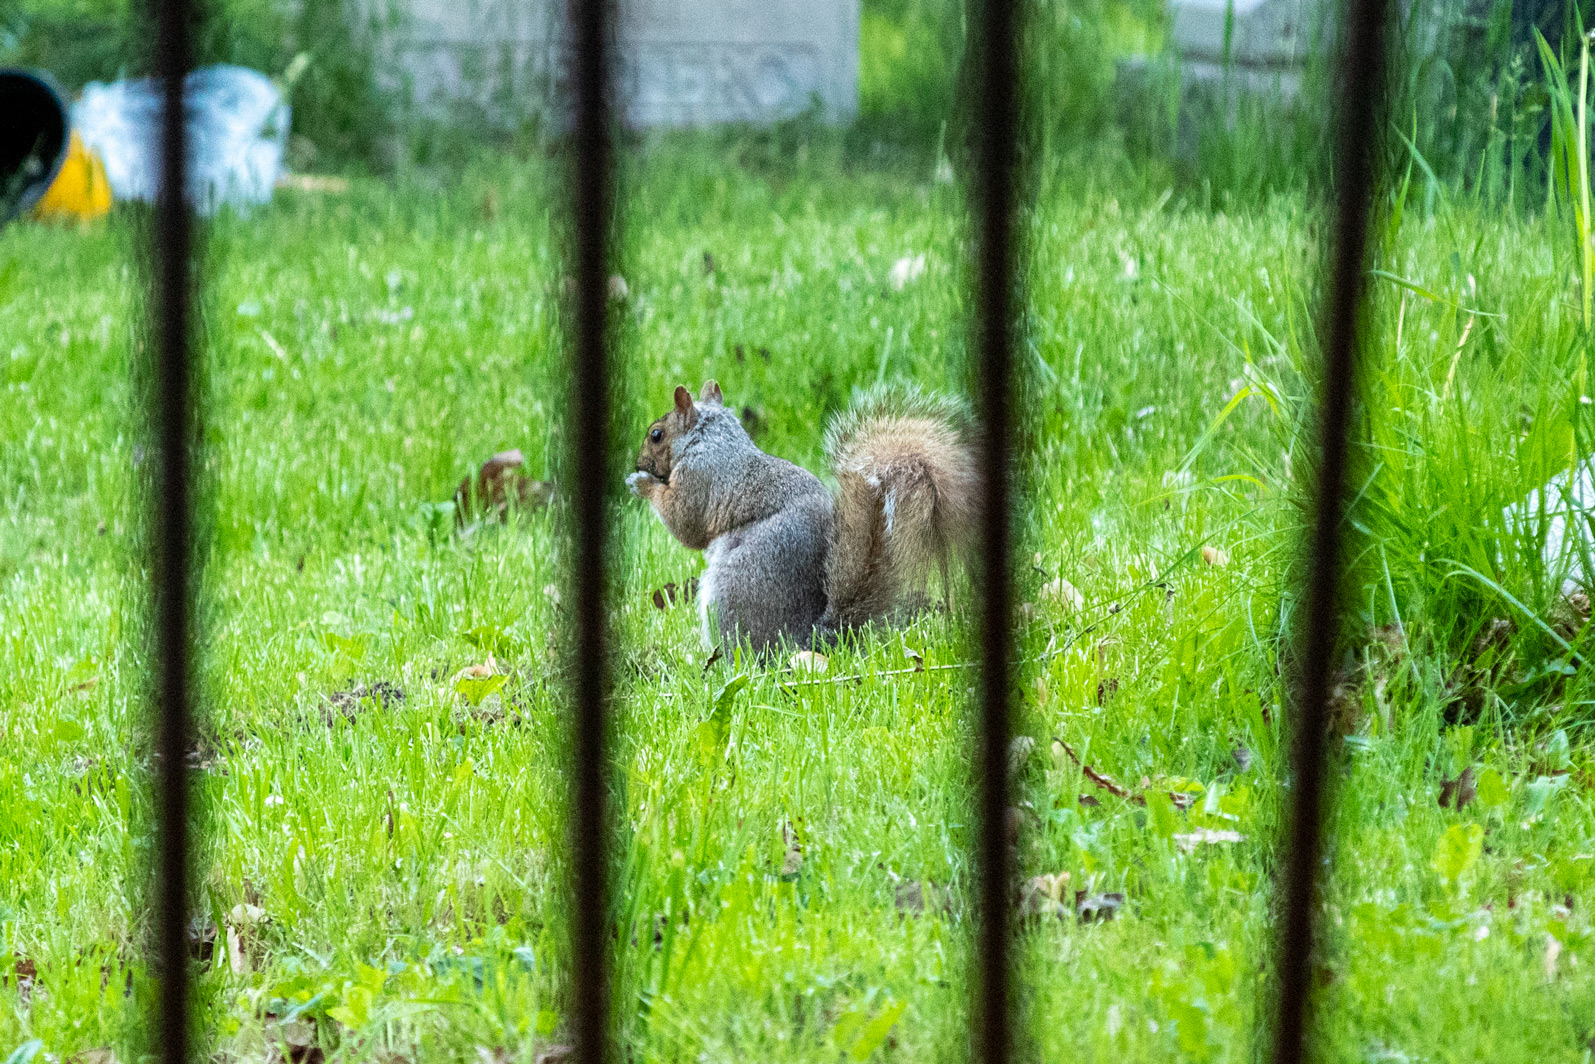 Squirrel in the grass framed by the bars of a metal fence